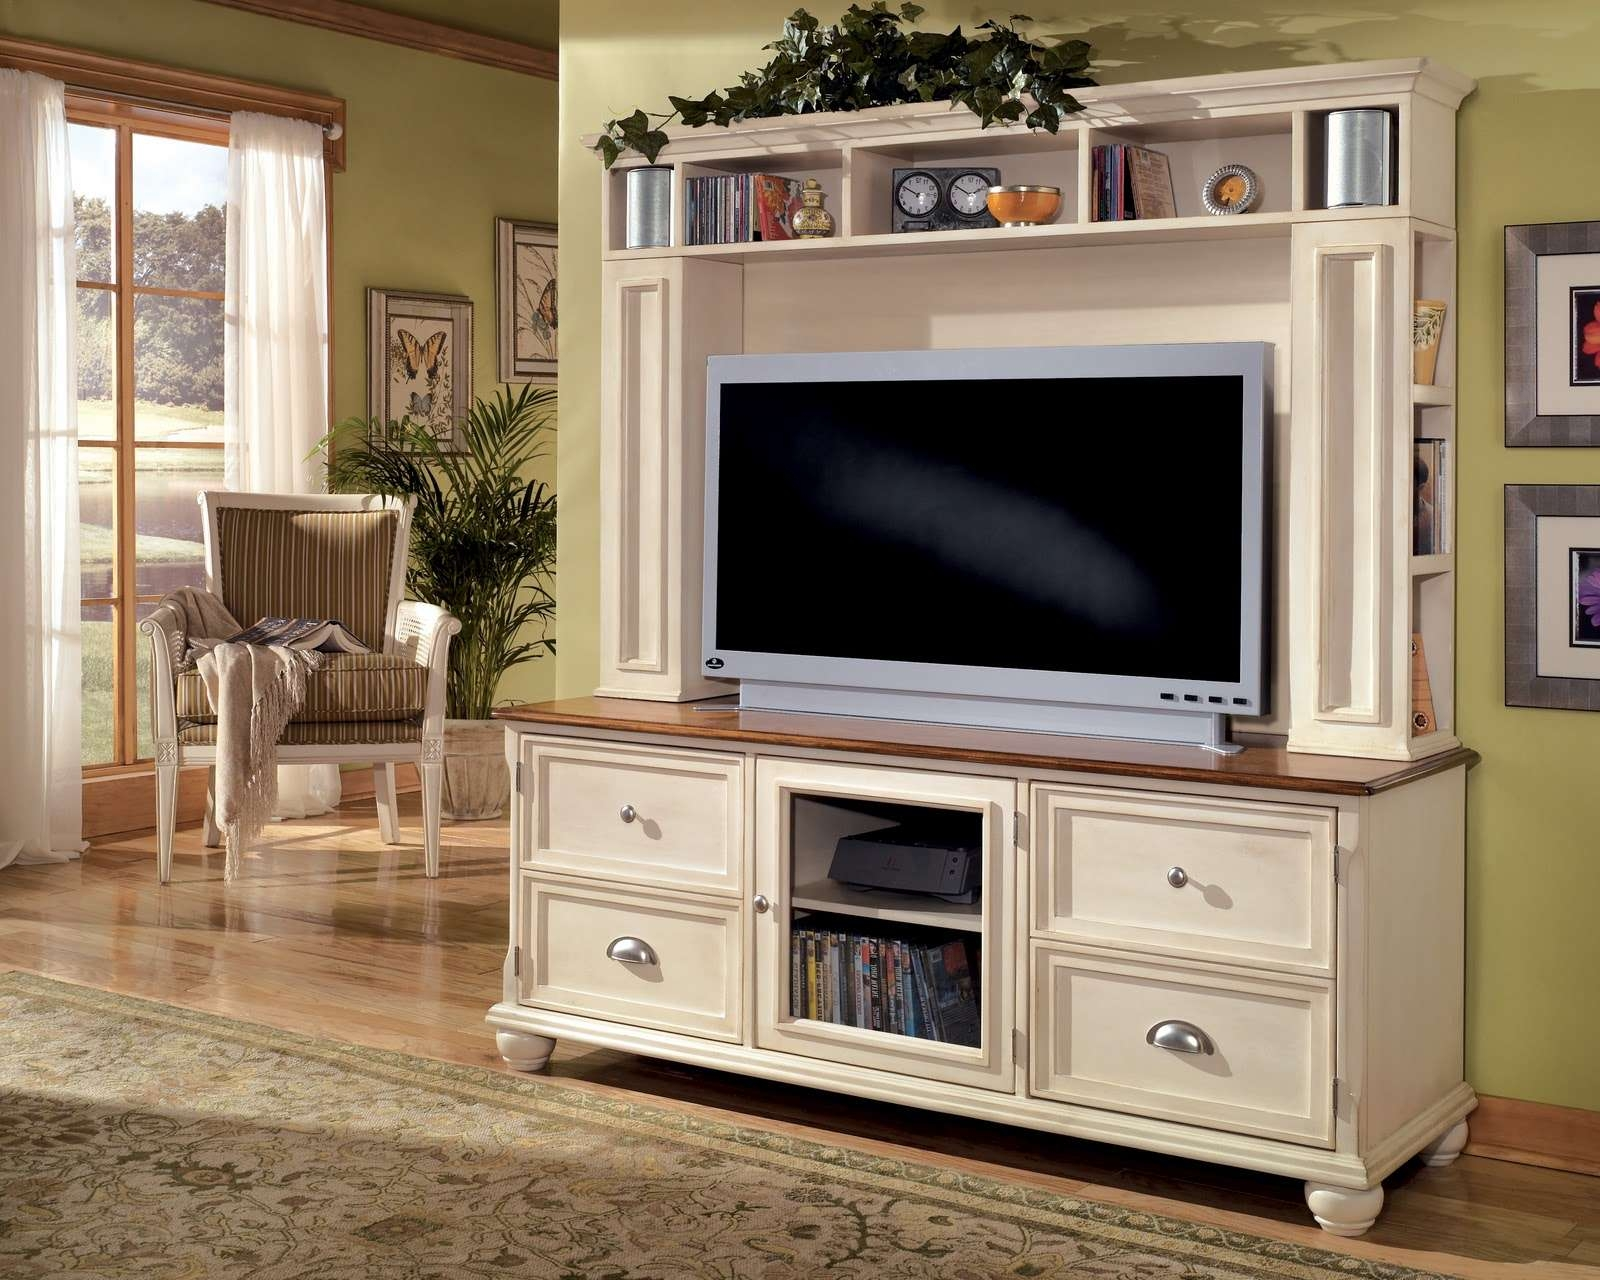 Large White Wooden Tall Tv Stand For Bedroom With Racks And With Large White Tv Stands (View 7 of 15)